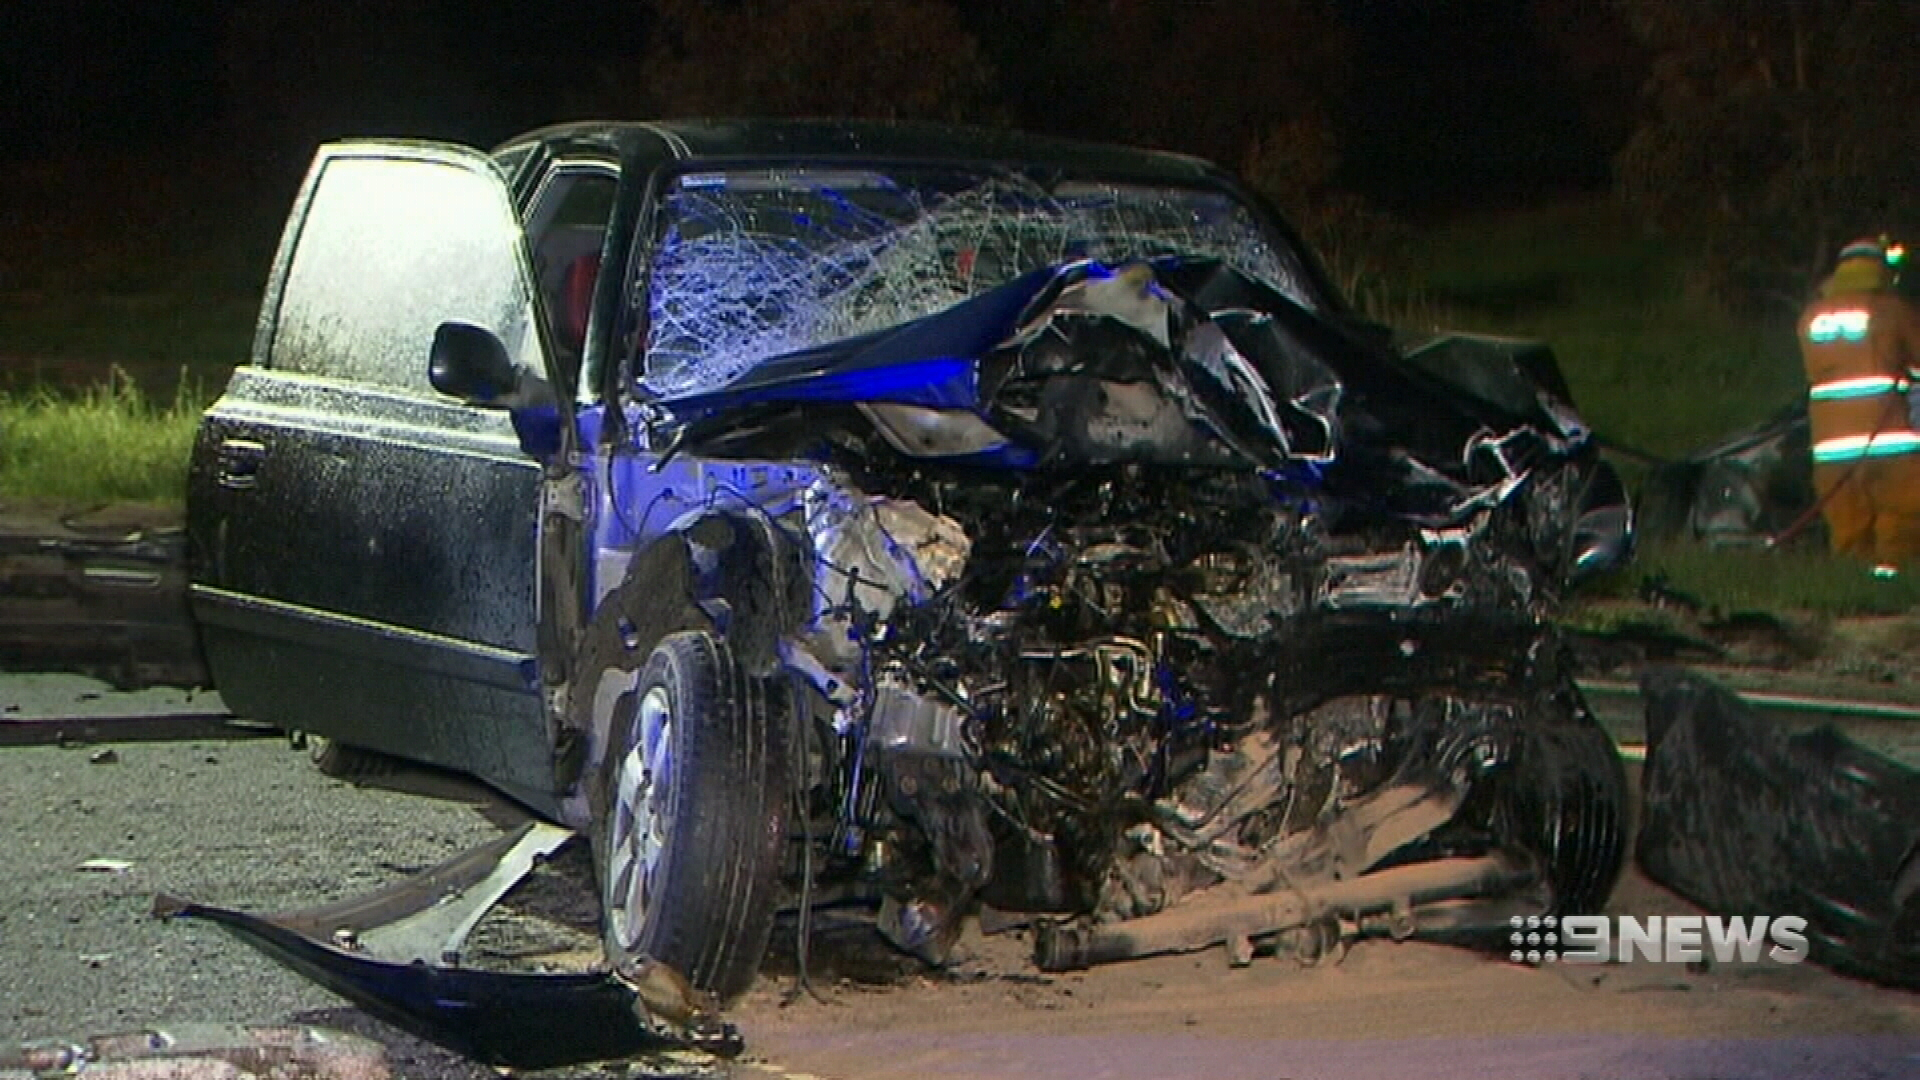 Driver S Miraculous Escape From Horror Adelaide Car Crash